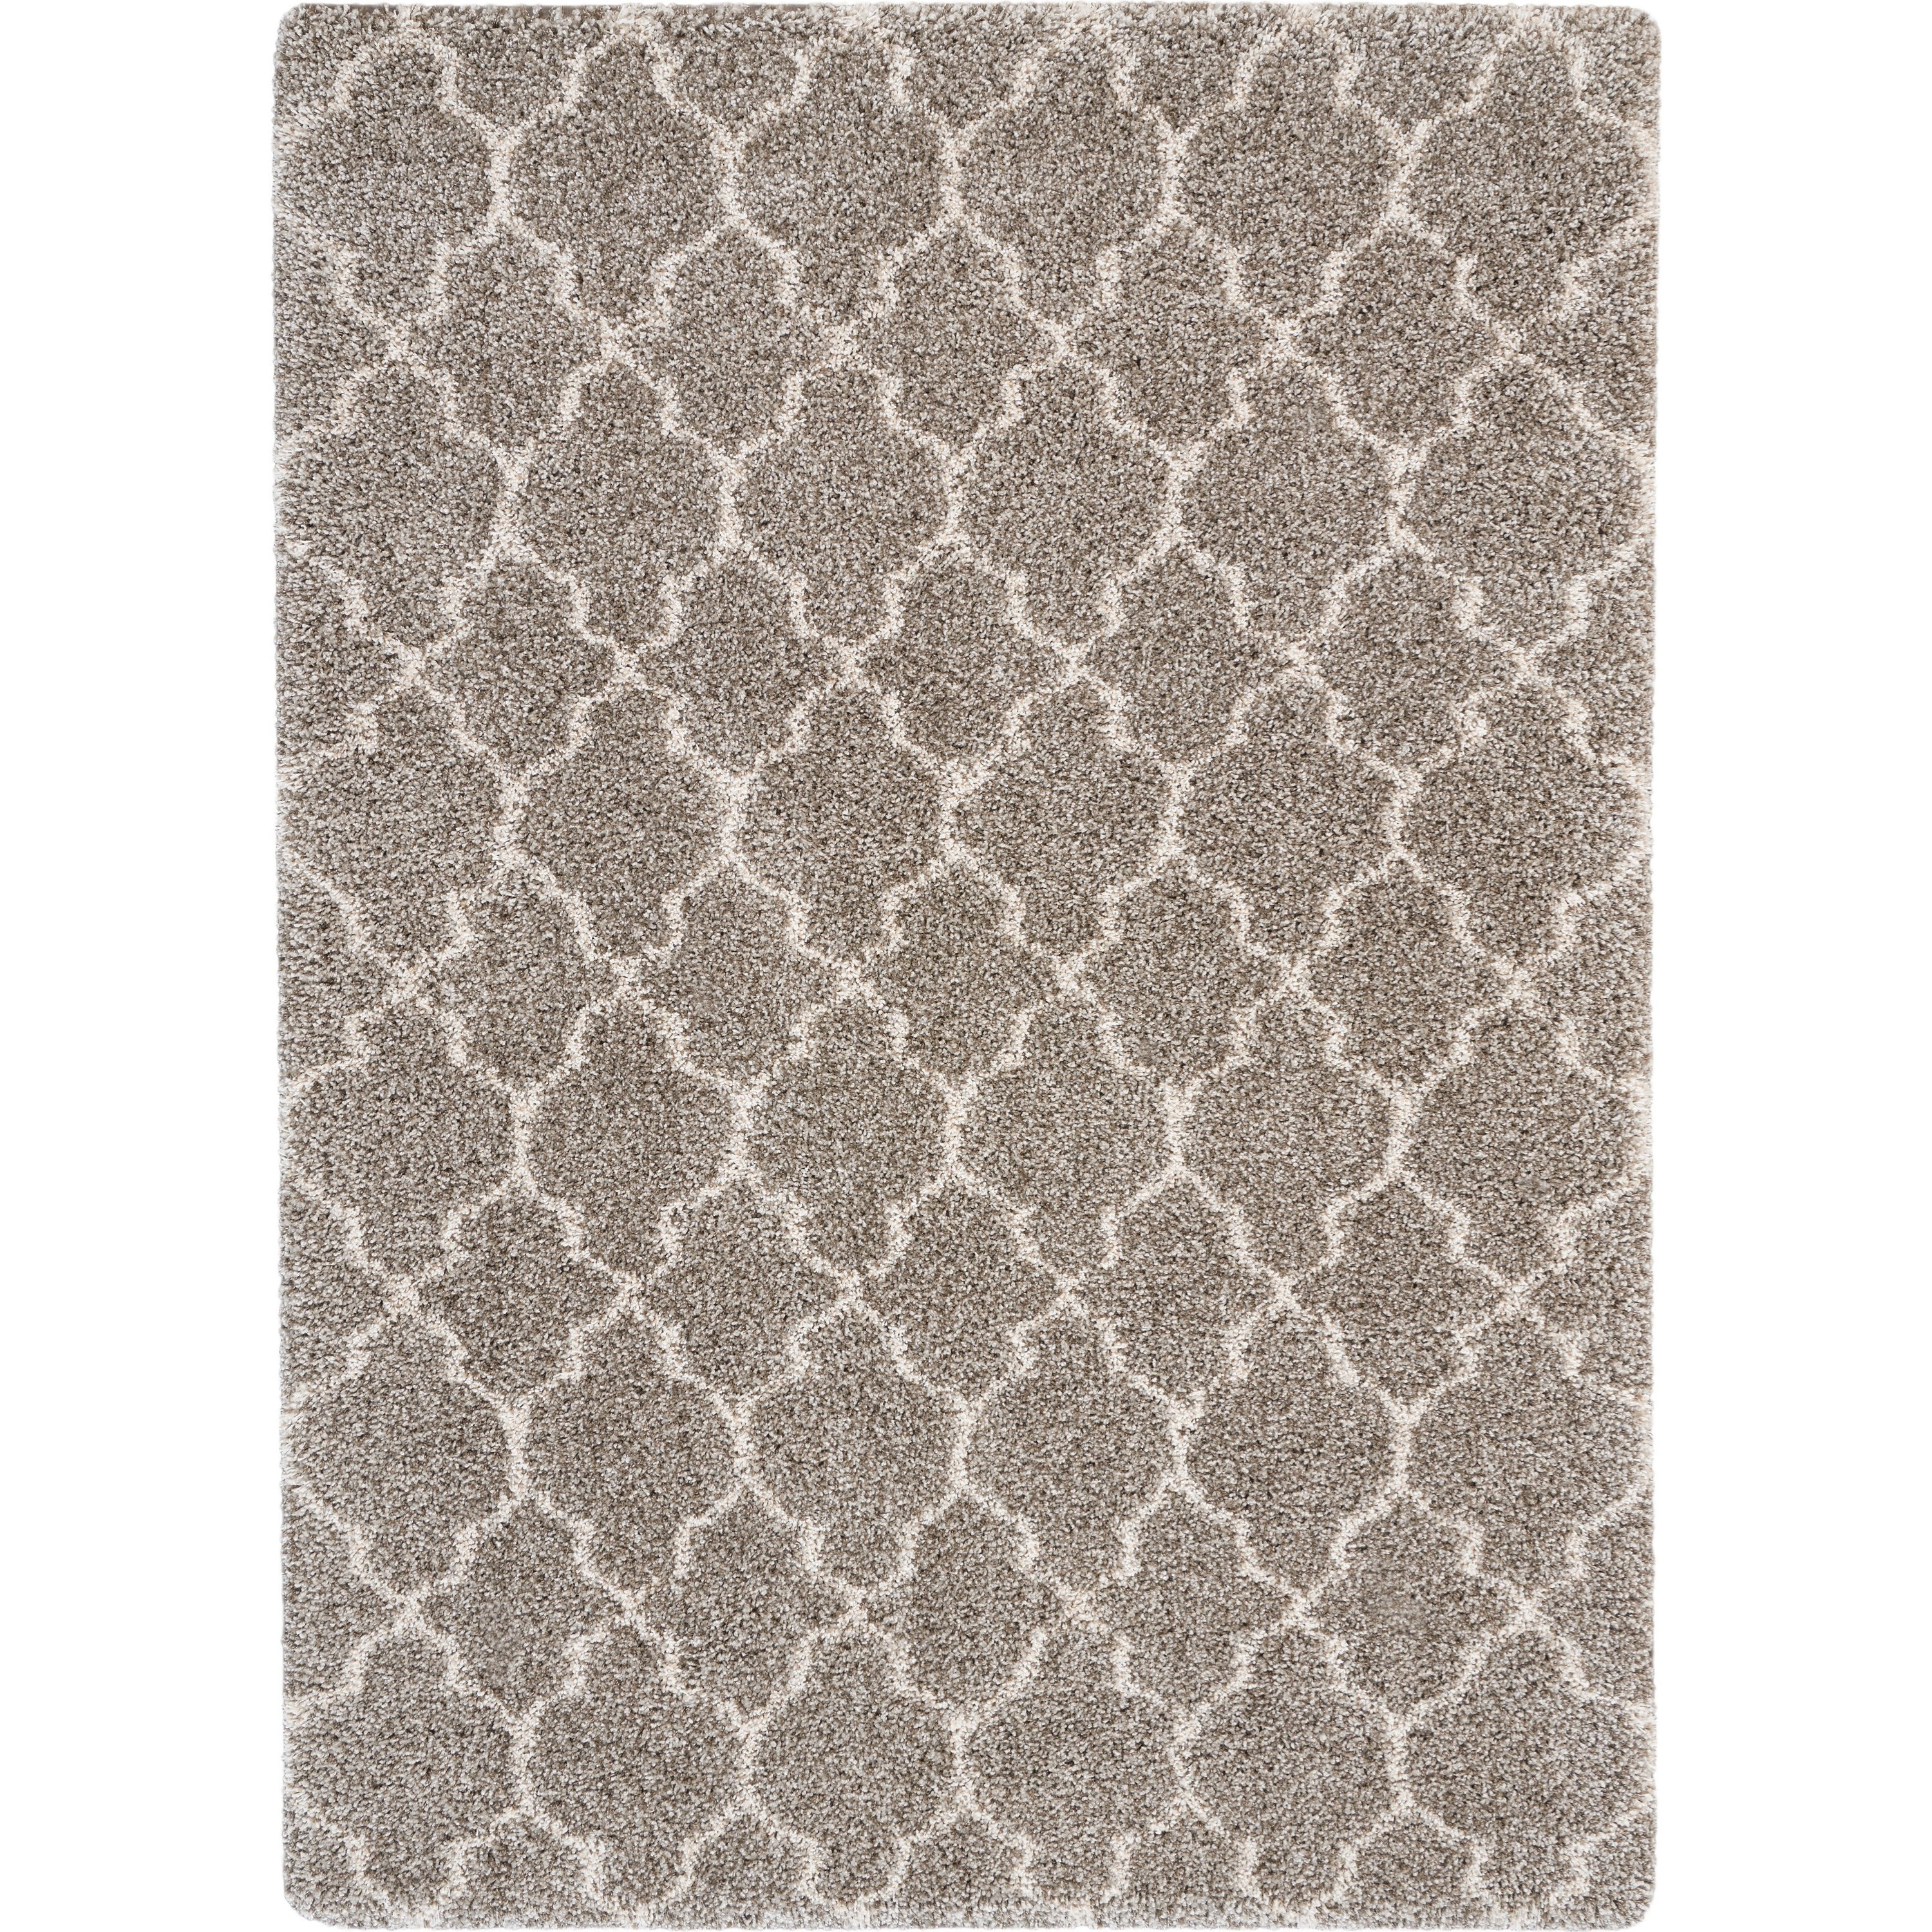 Amore Amore AMOR2 Beige 5'x8' Area Rug by Nourison at Home Collections Furniture